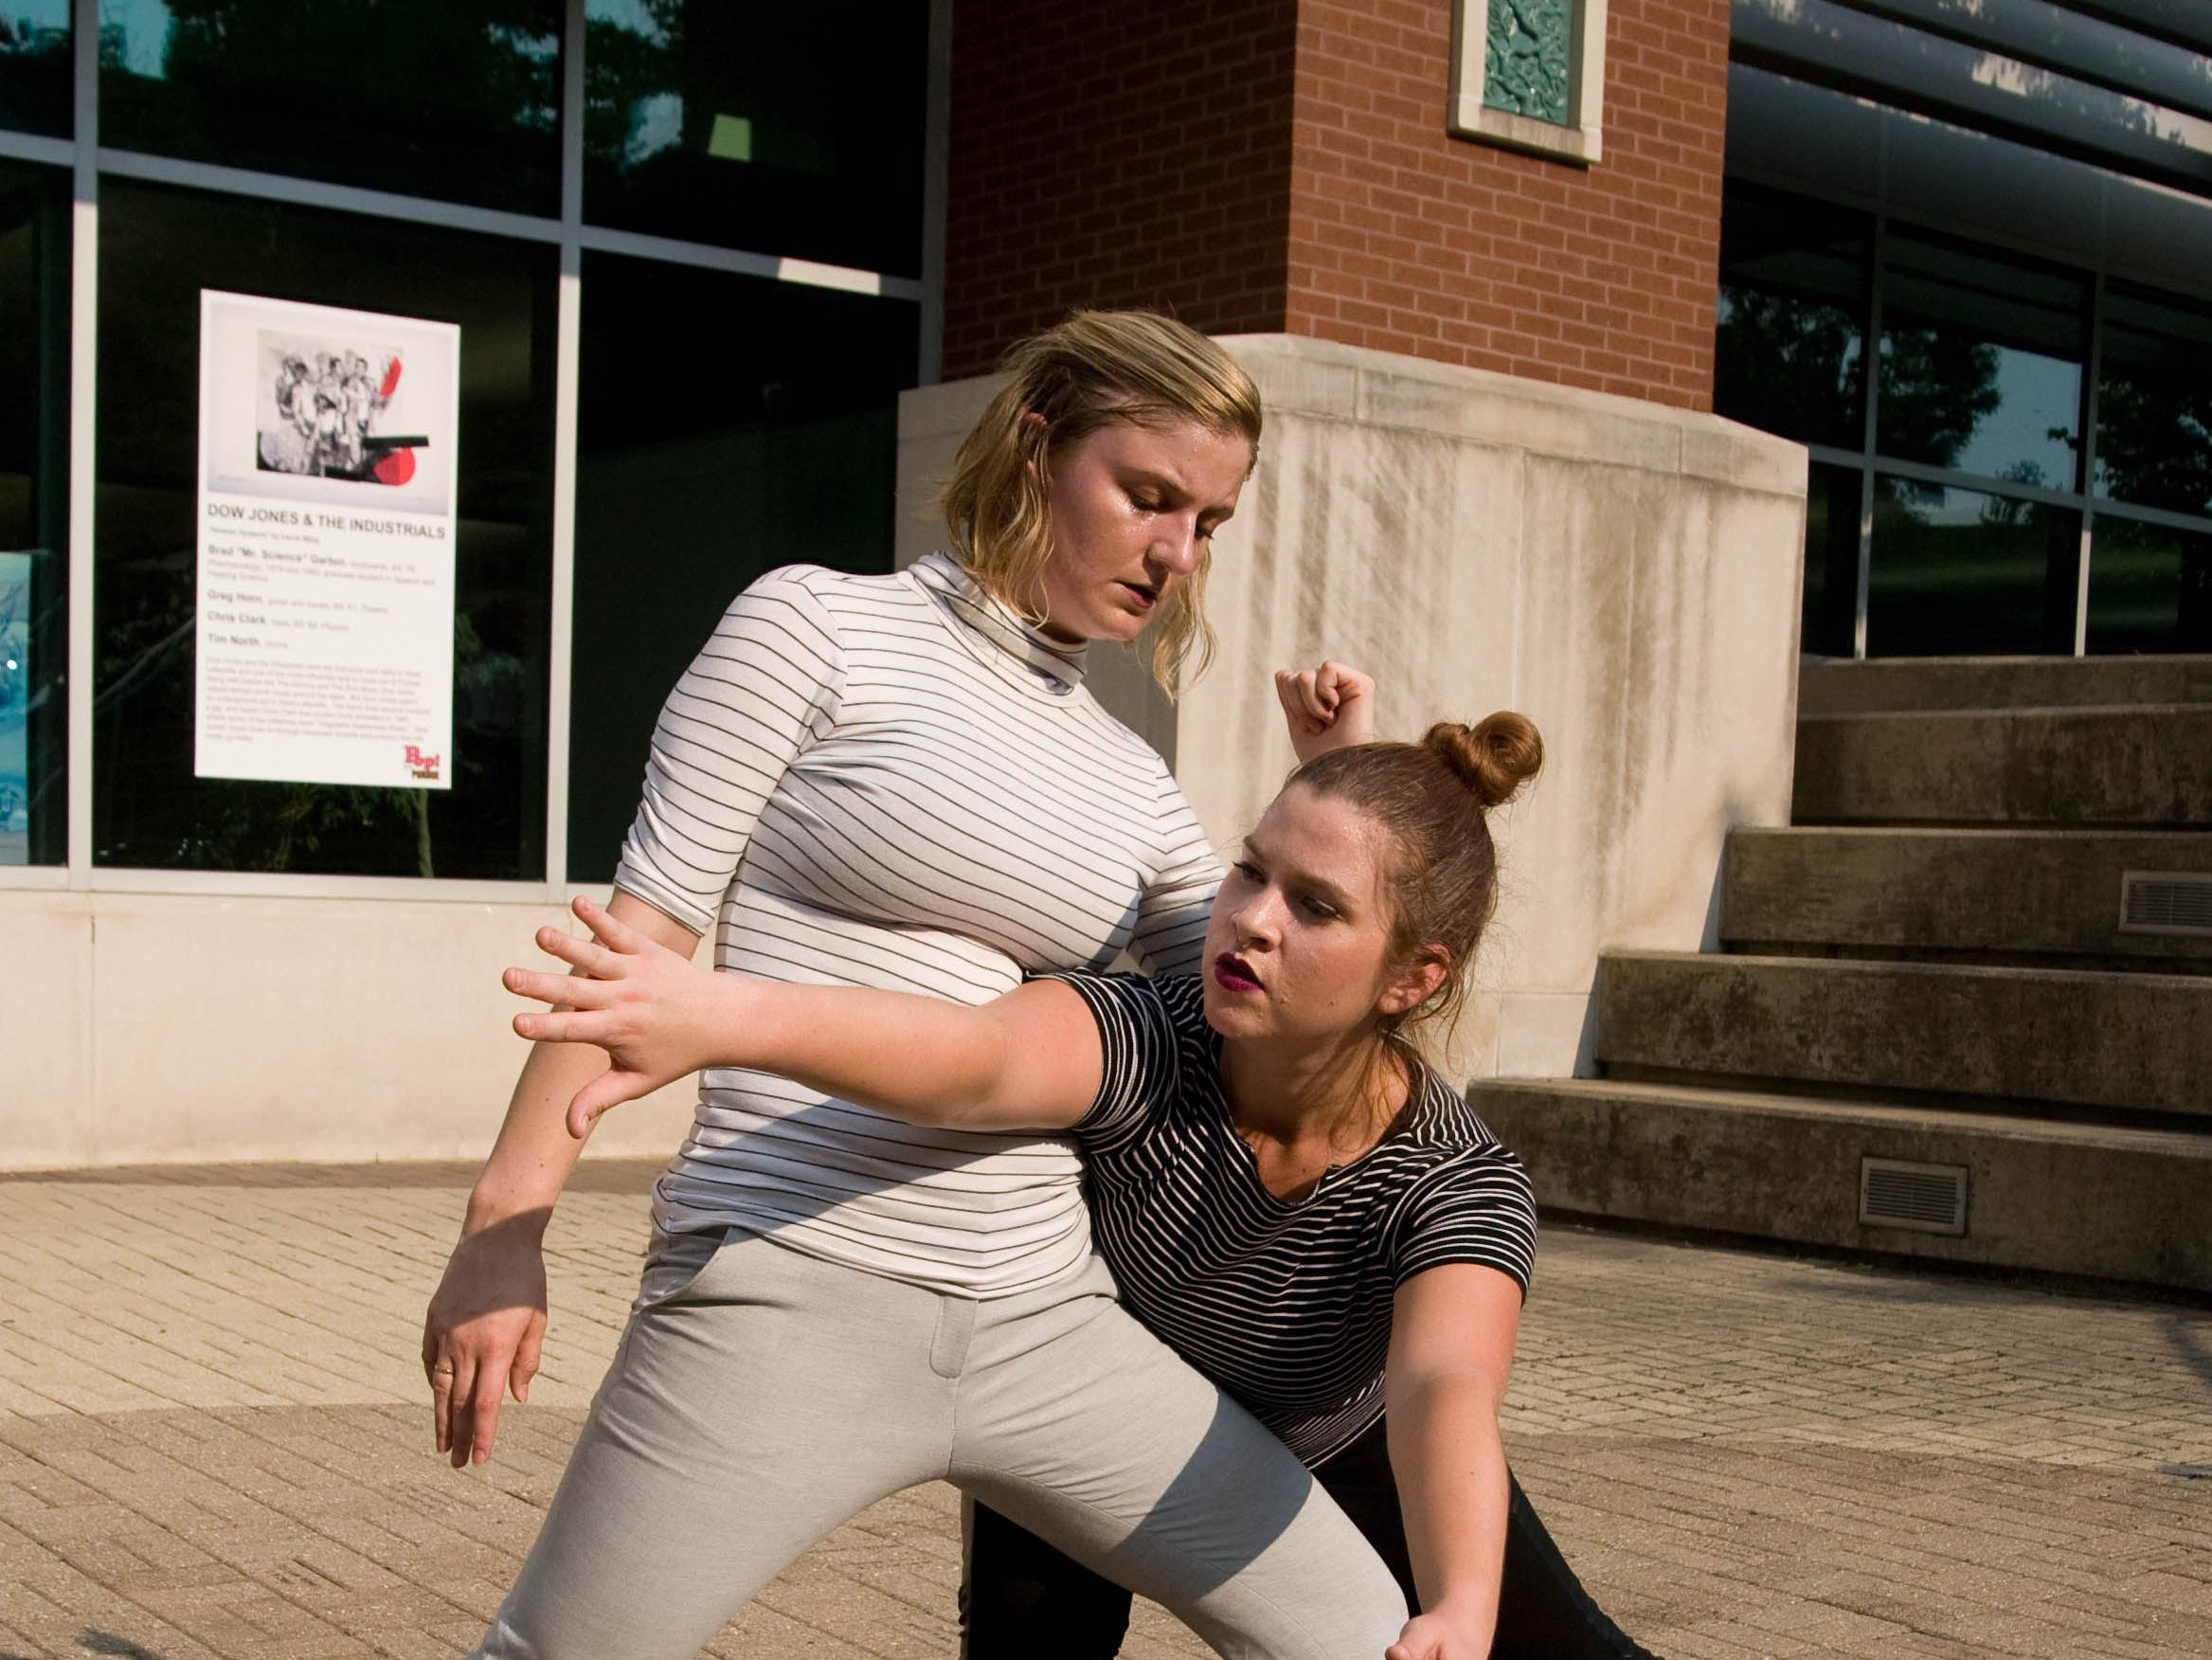 By Tom Baugues/ for the Journal & Courier